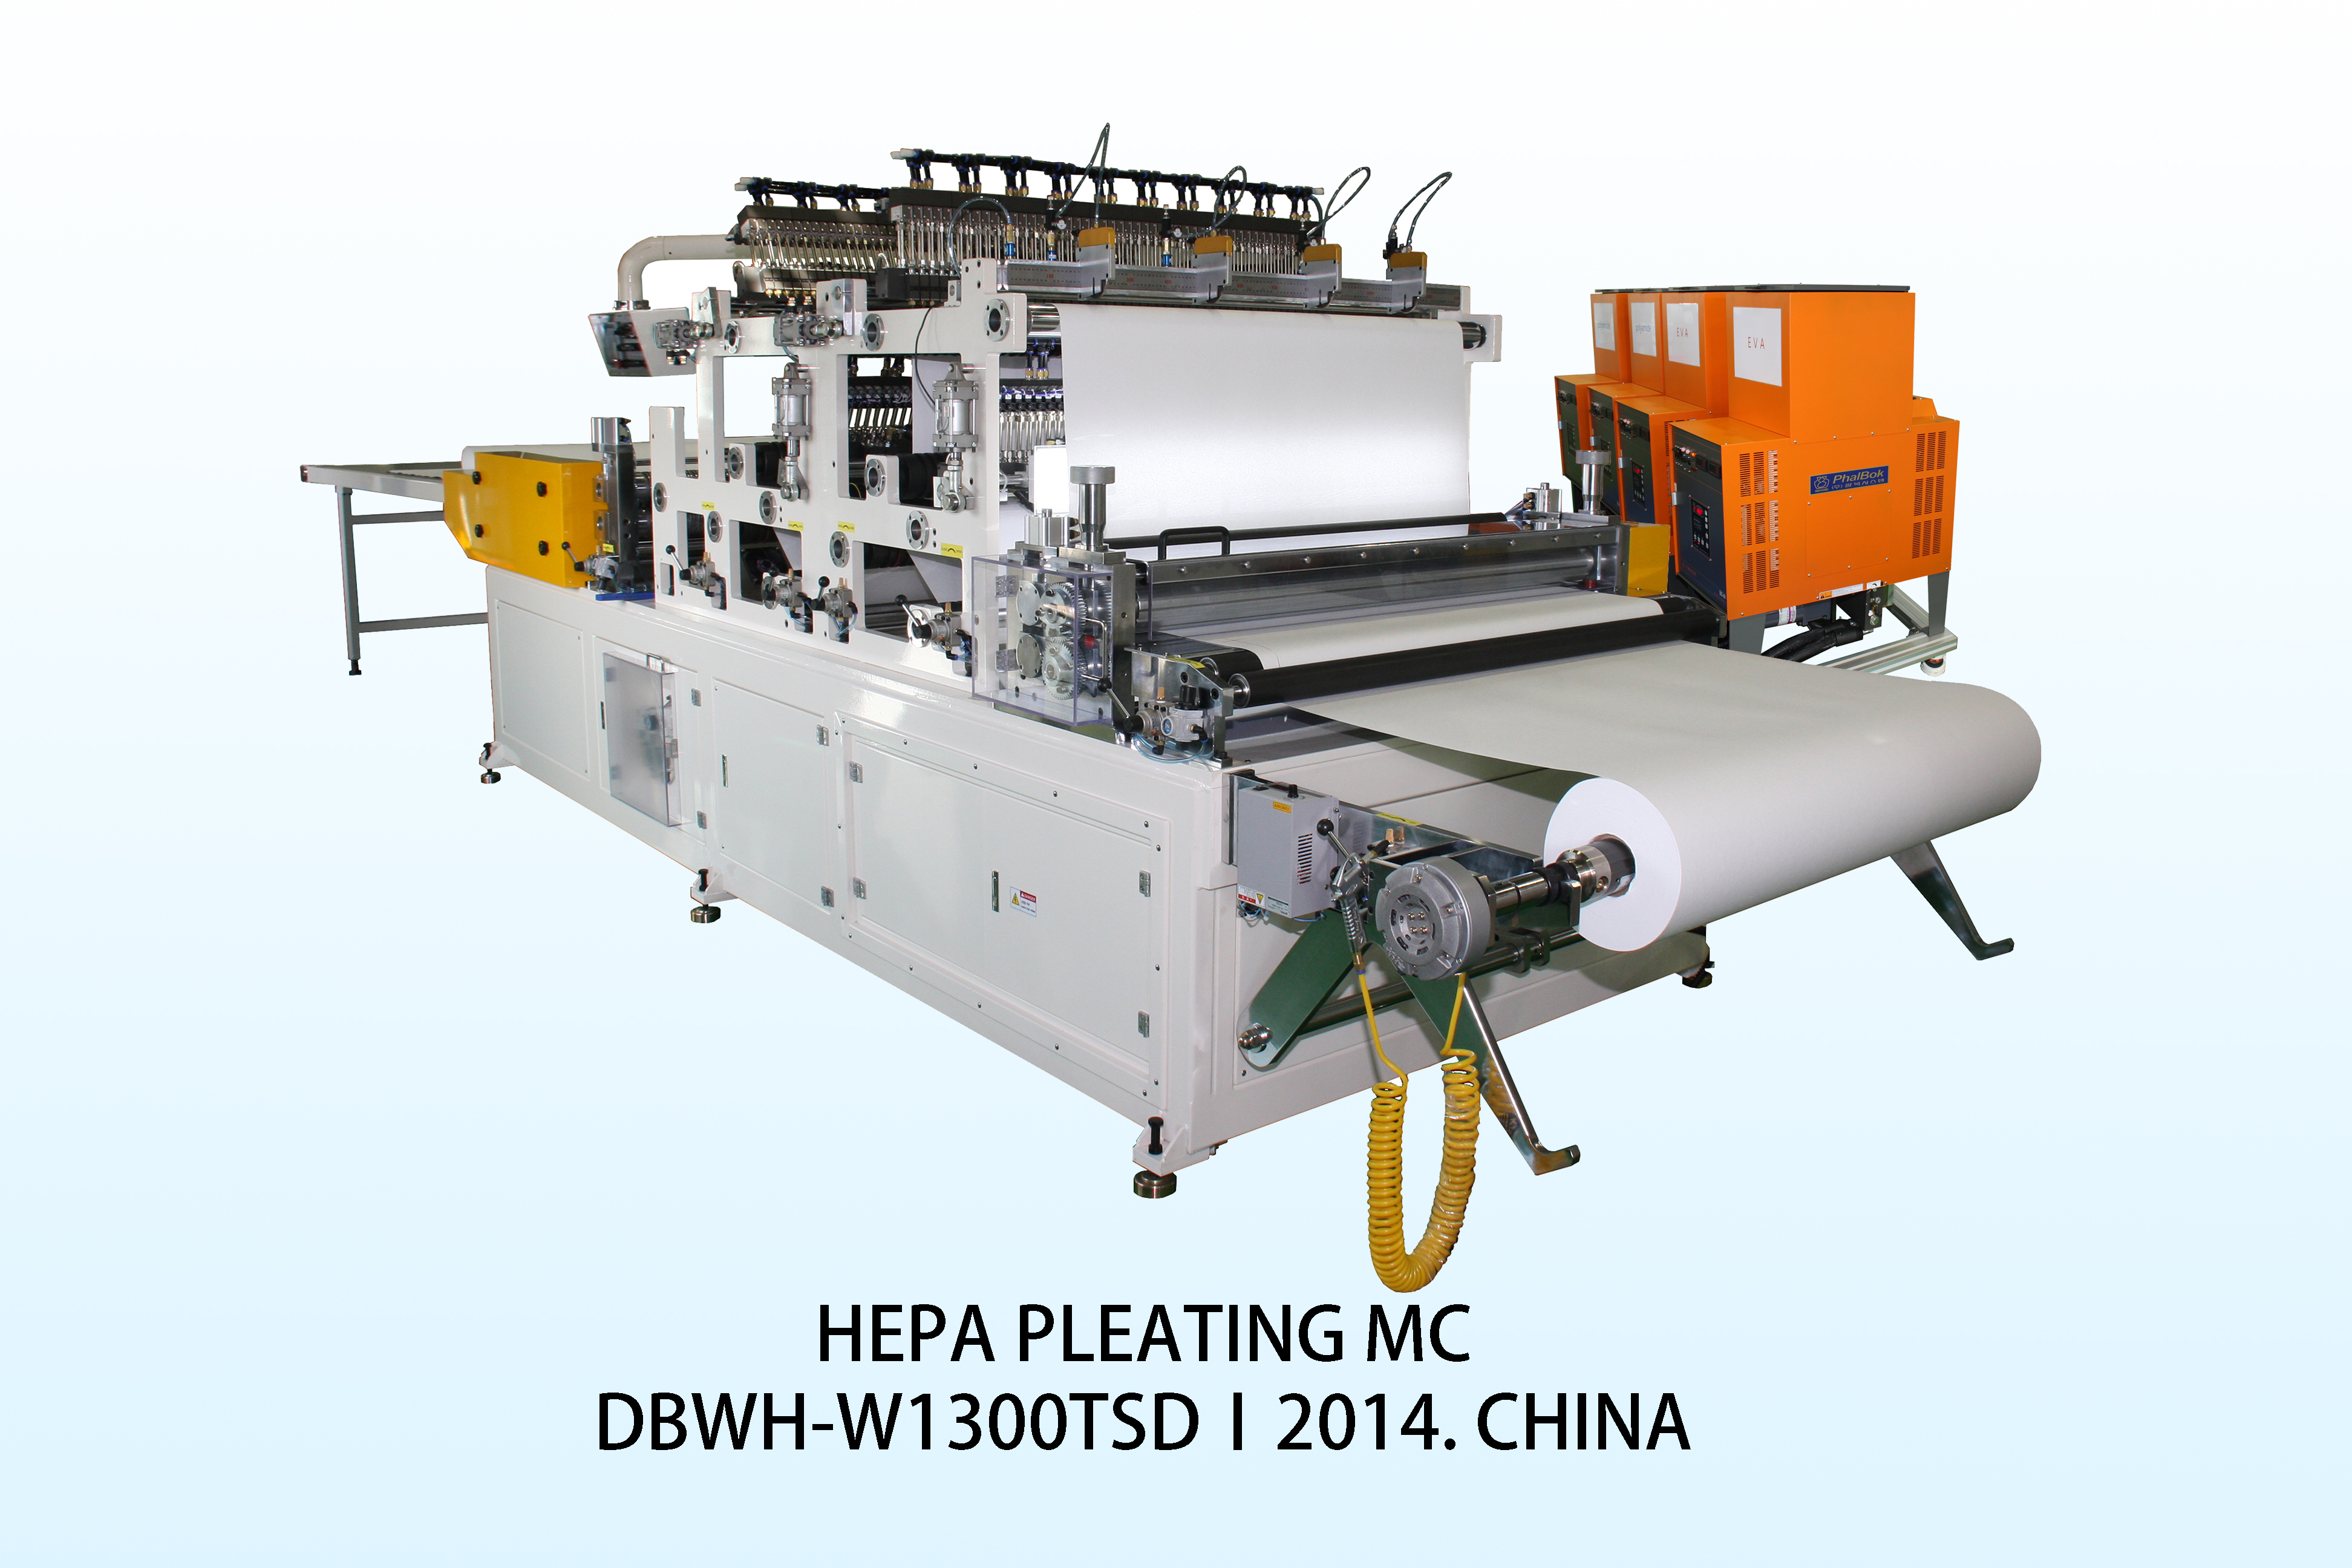 Filter media pleating machine for HEPA filters, for semiconductor, medicine manufacturing, hospitals...